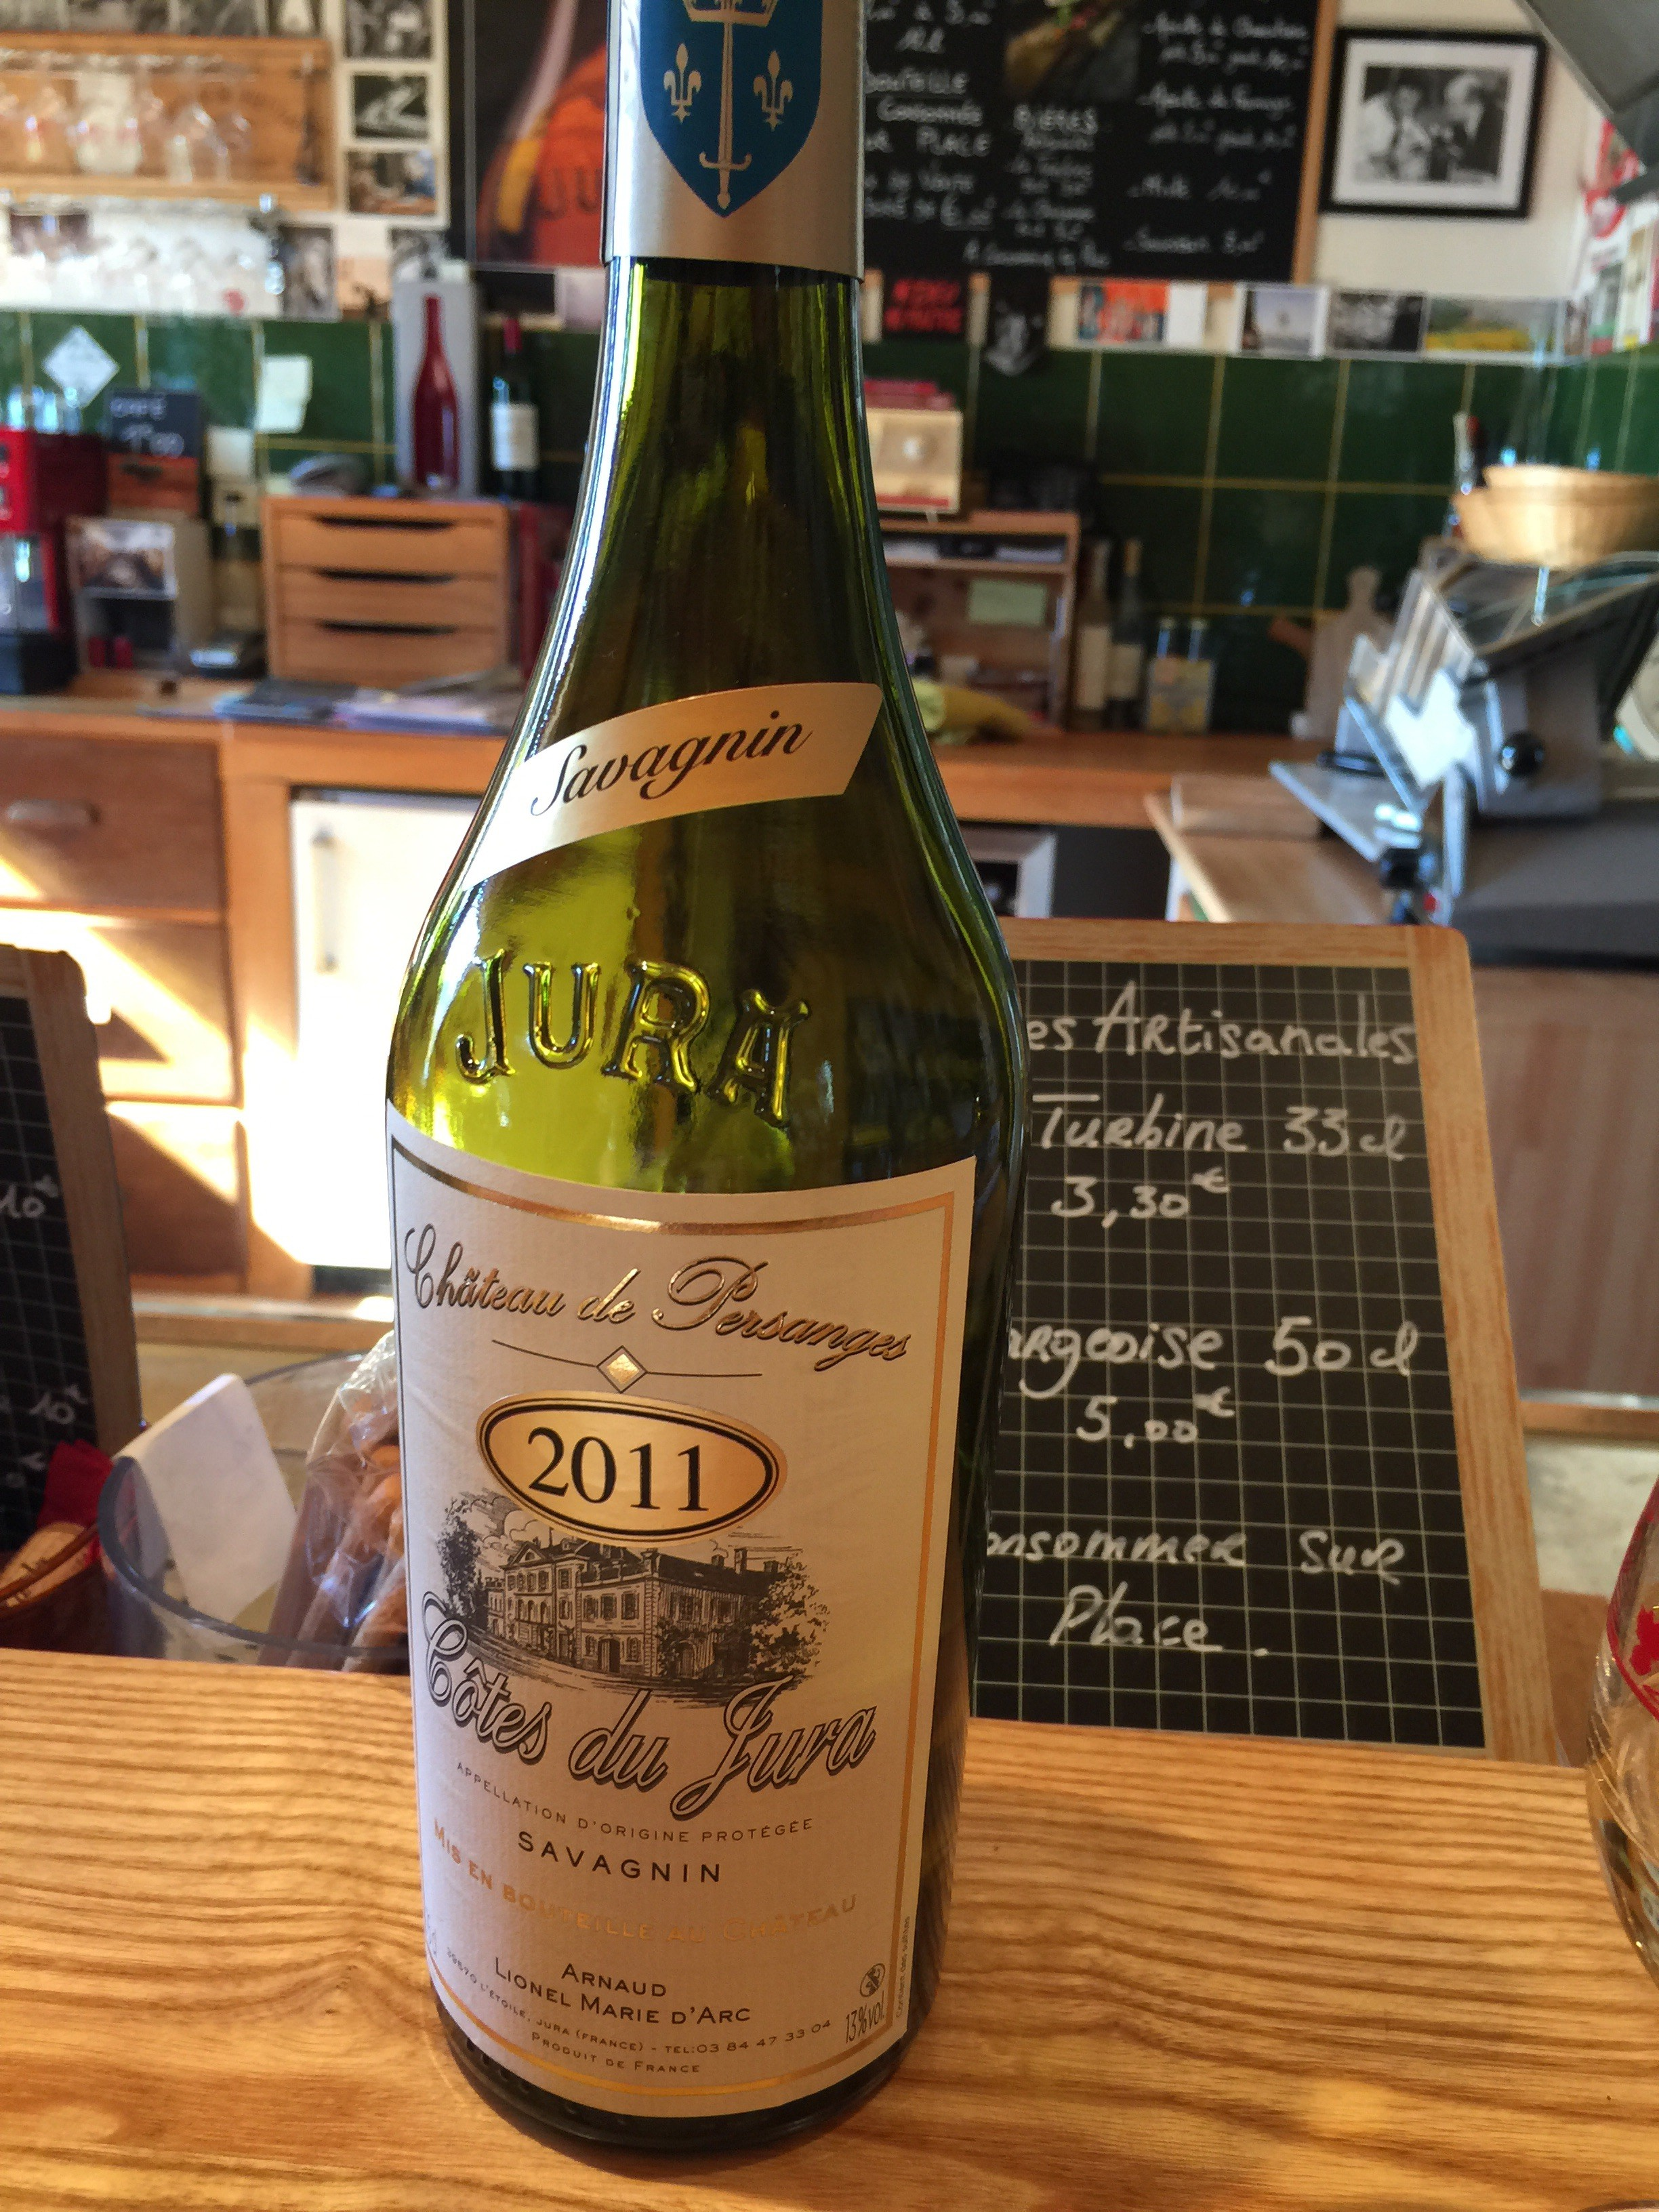 2011 Savagnin. A classic varietal from the Jura. Not to be confused with Sauvignon Blanc.